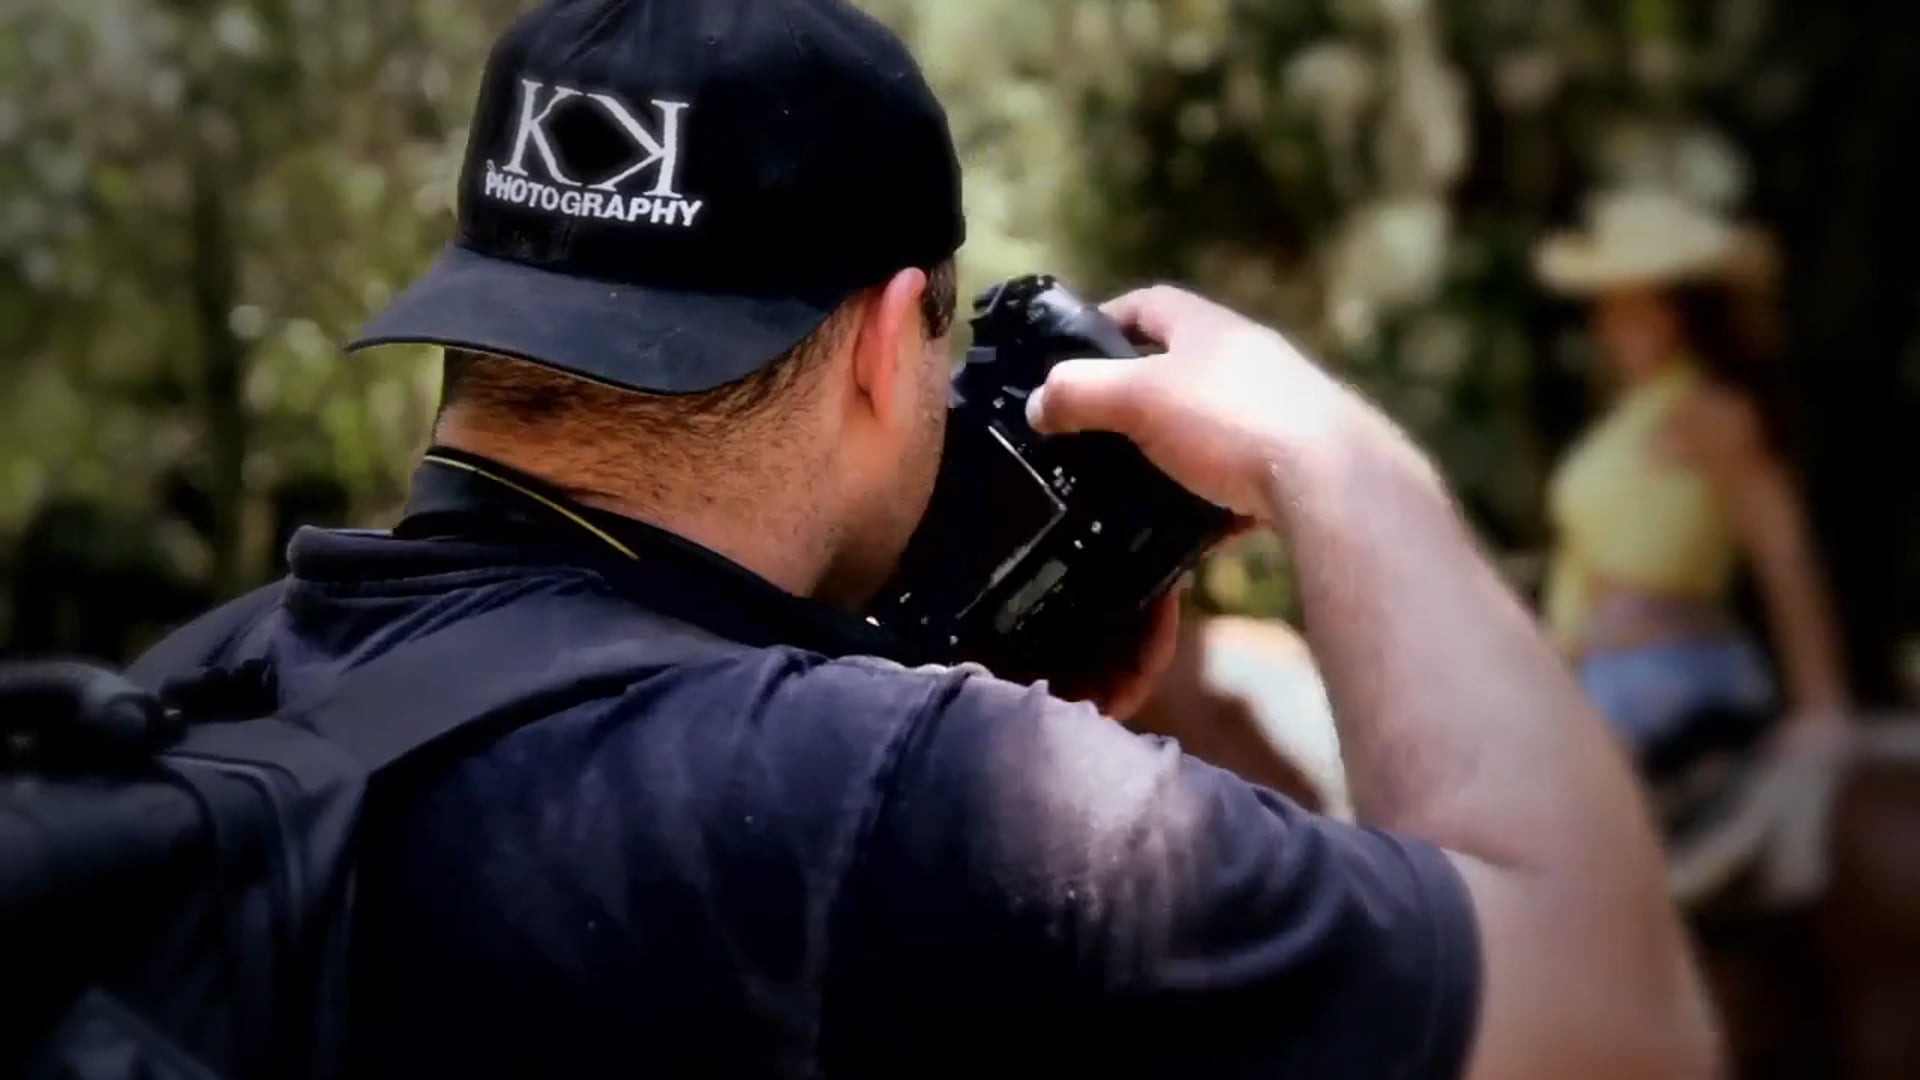 Behind the scenes Jeanine Cruse - KK Photography and Star Video Productions -1280